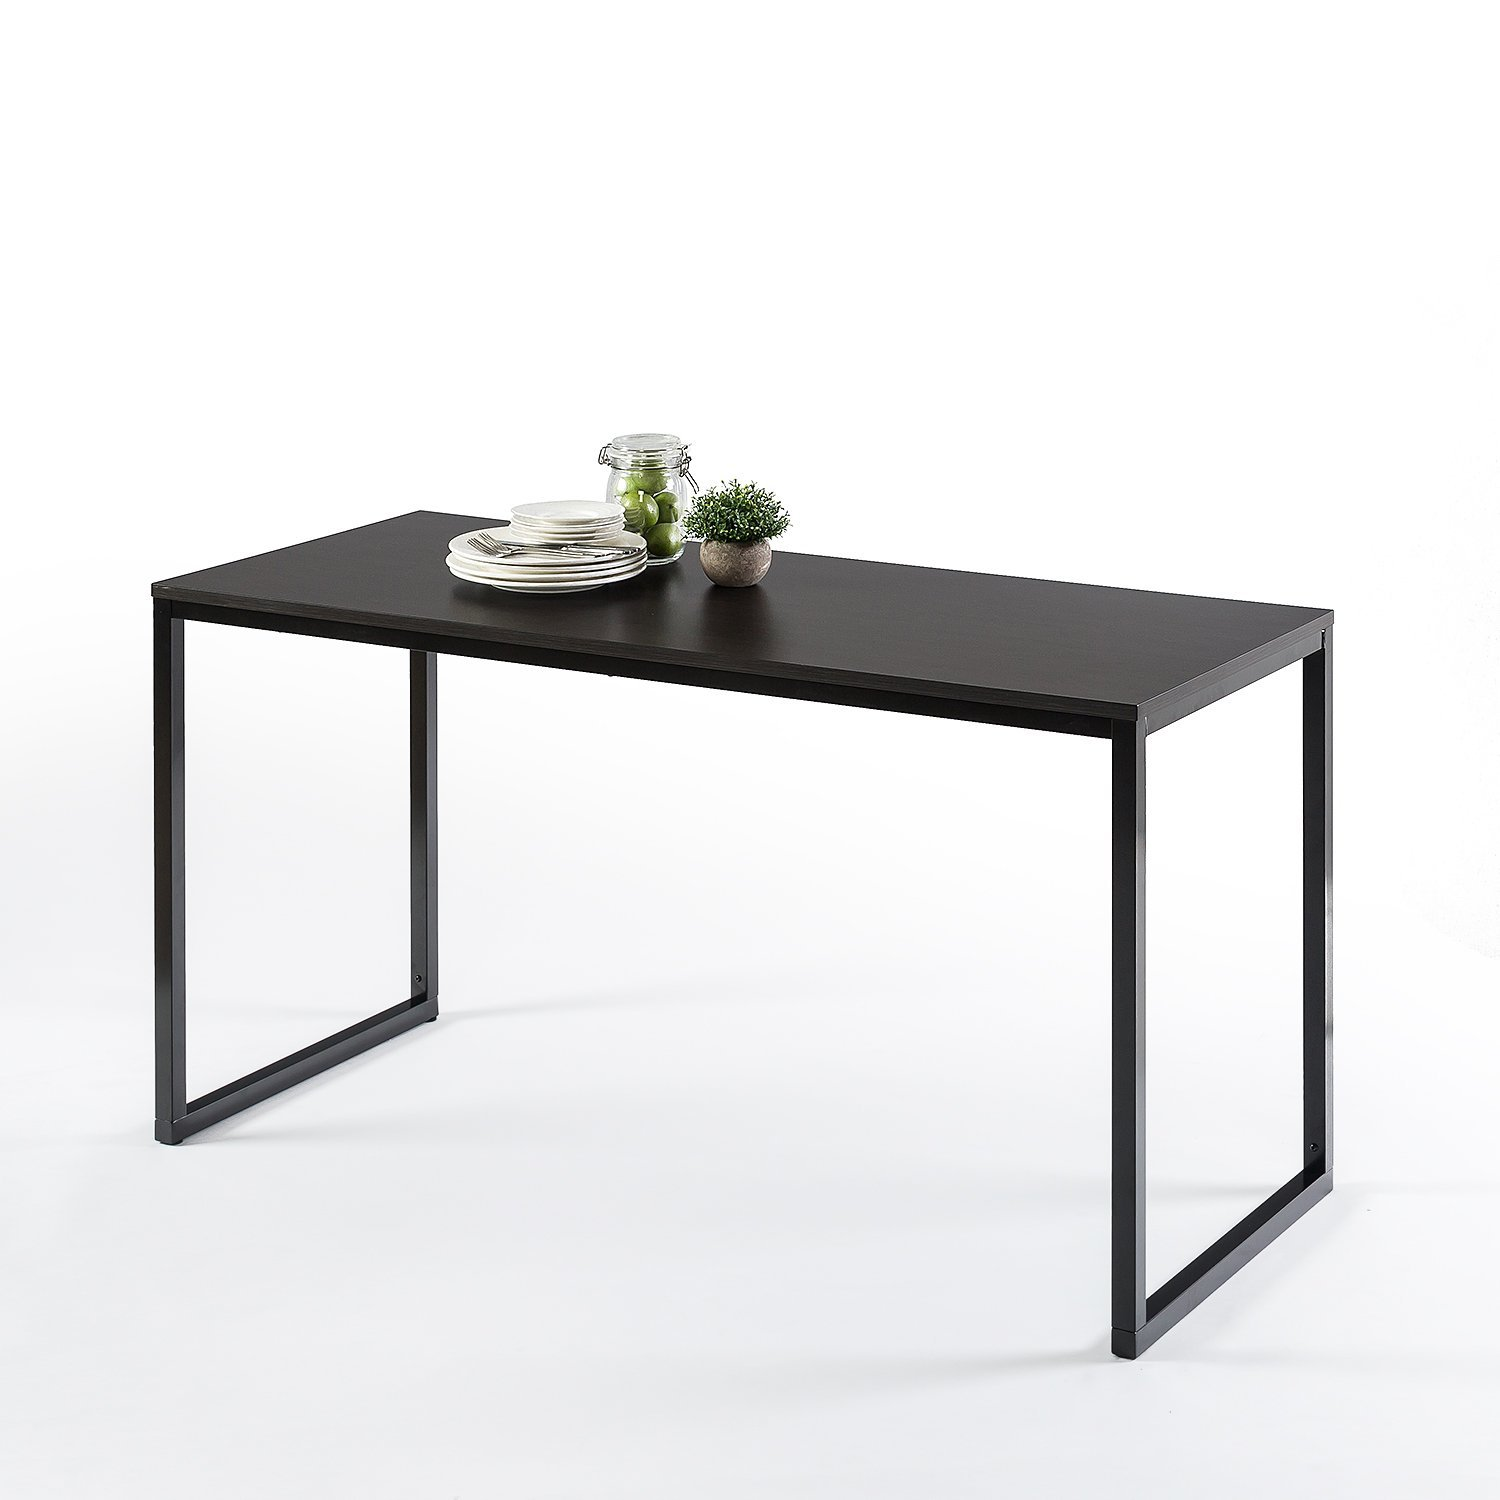 Zinus Jennifer Modern Studio Collection Soho Rectangular Dining Table / Table Only / Office Desk / Computer Table, Espresso by Zinus